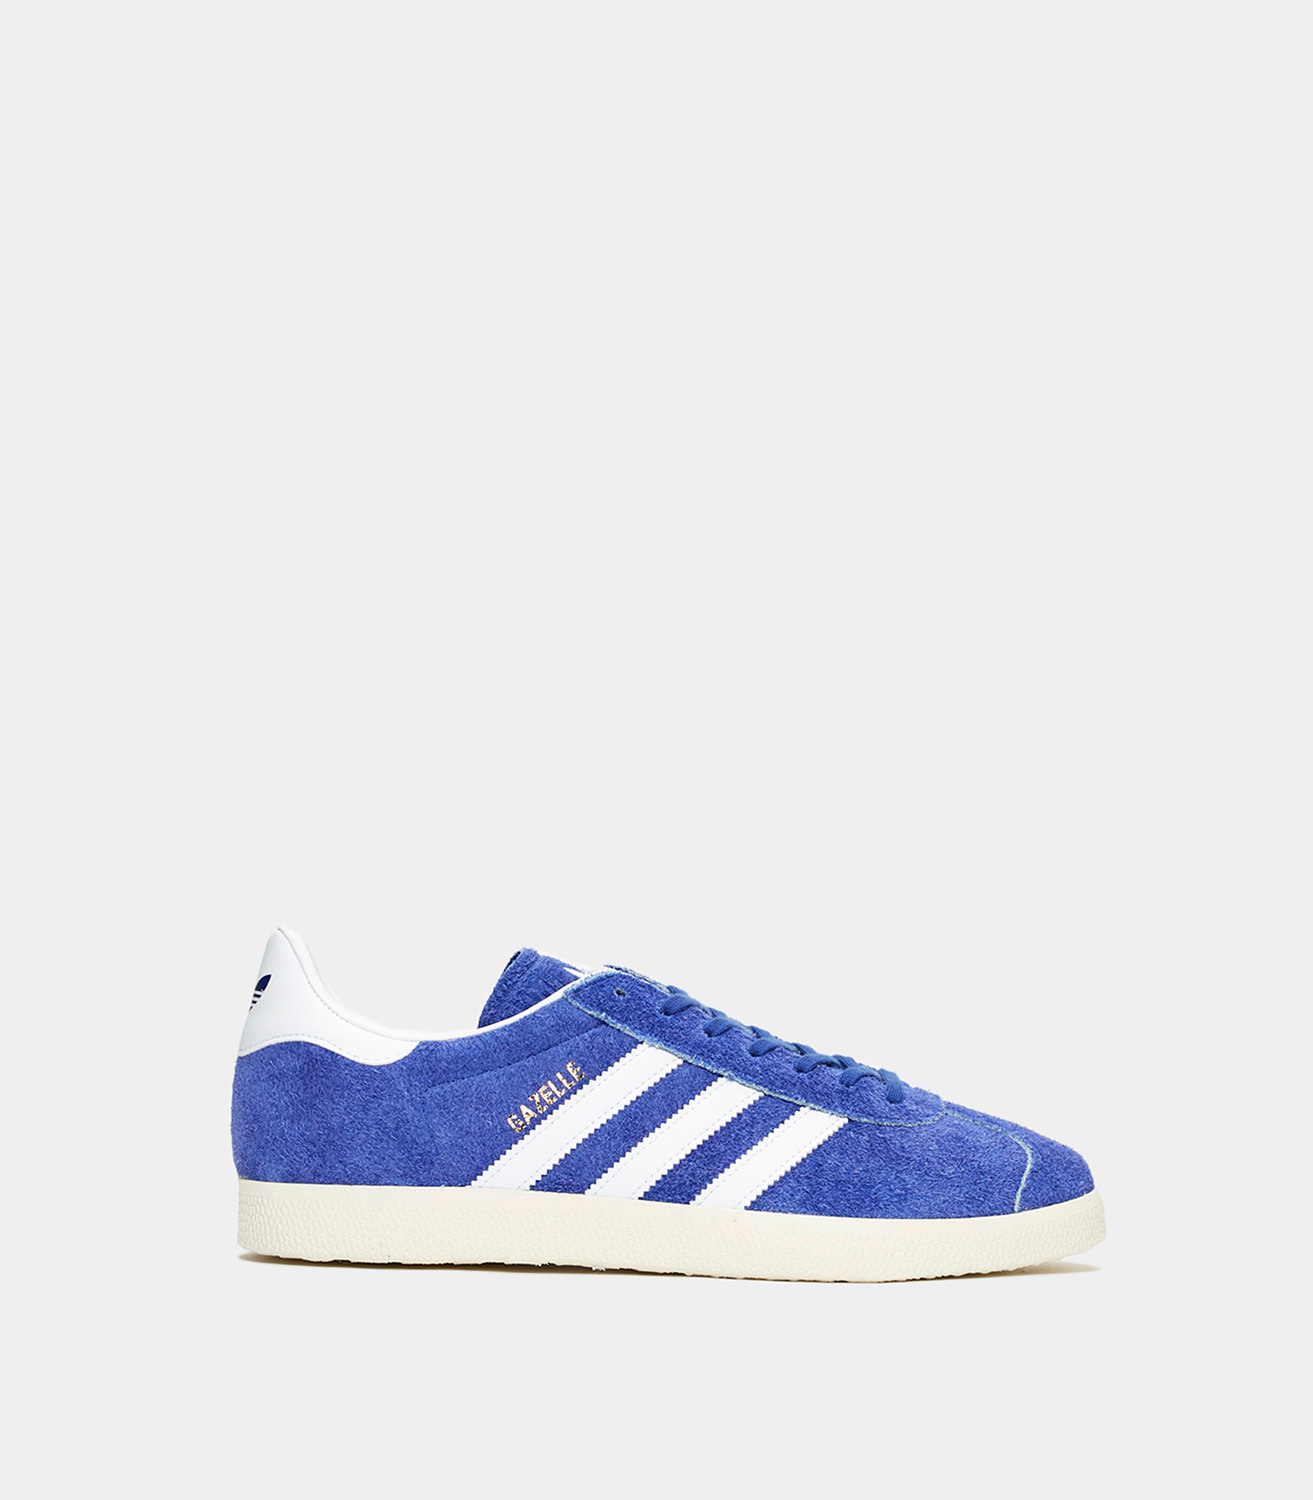 size 40 ea76e cd904 ADIDAS ORIGINALS  GAZELLE SNEAKERS COLOR BLUE